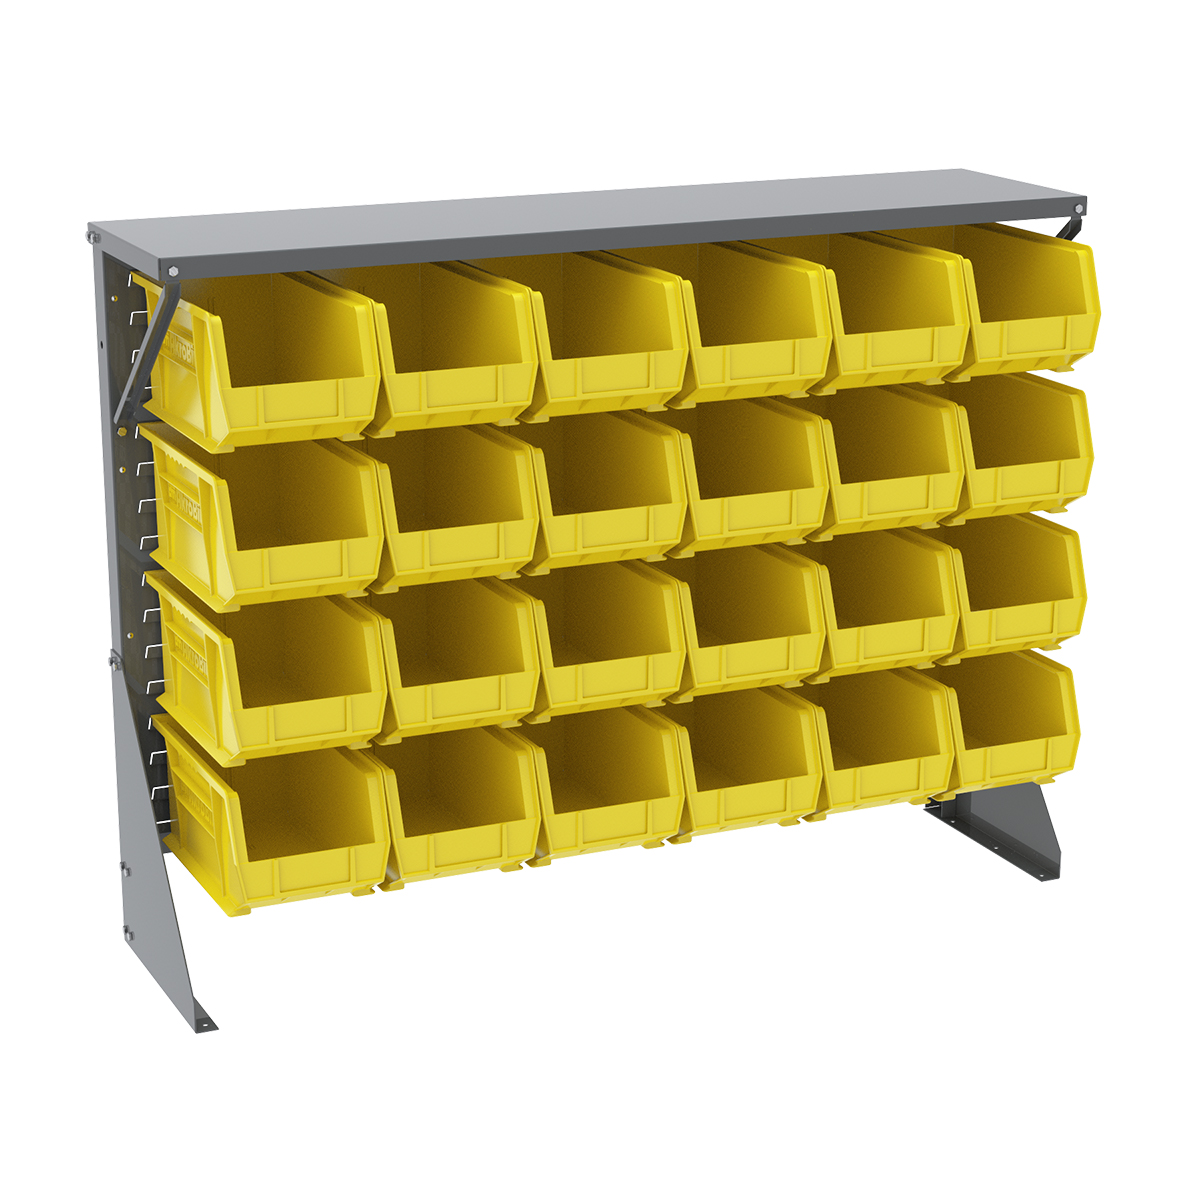 Item DISCONTINUED by Manufacturer.  Low Profile Floor Rack, 1-Sided, Shelf w/ 24 AkroBins, Gray/Yellow (30650GY240Y).  This item sold in carton quantities of 1.